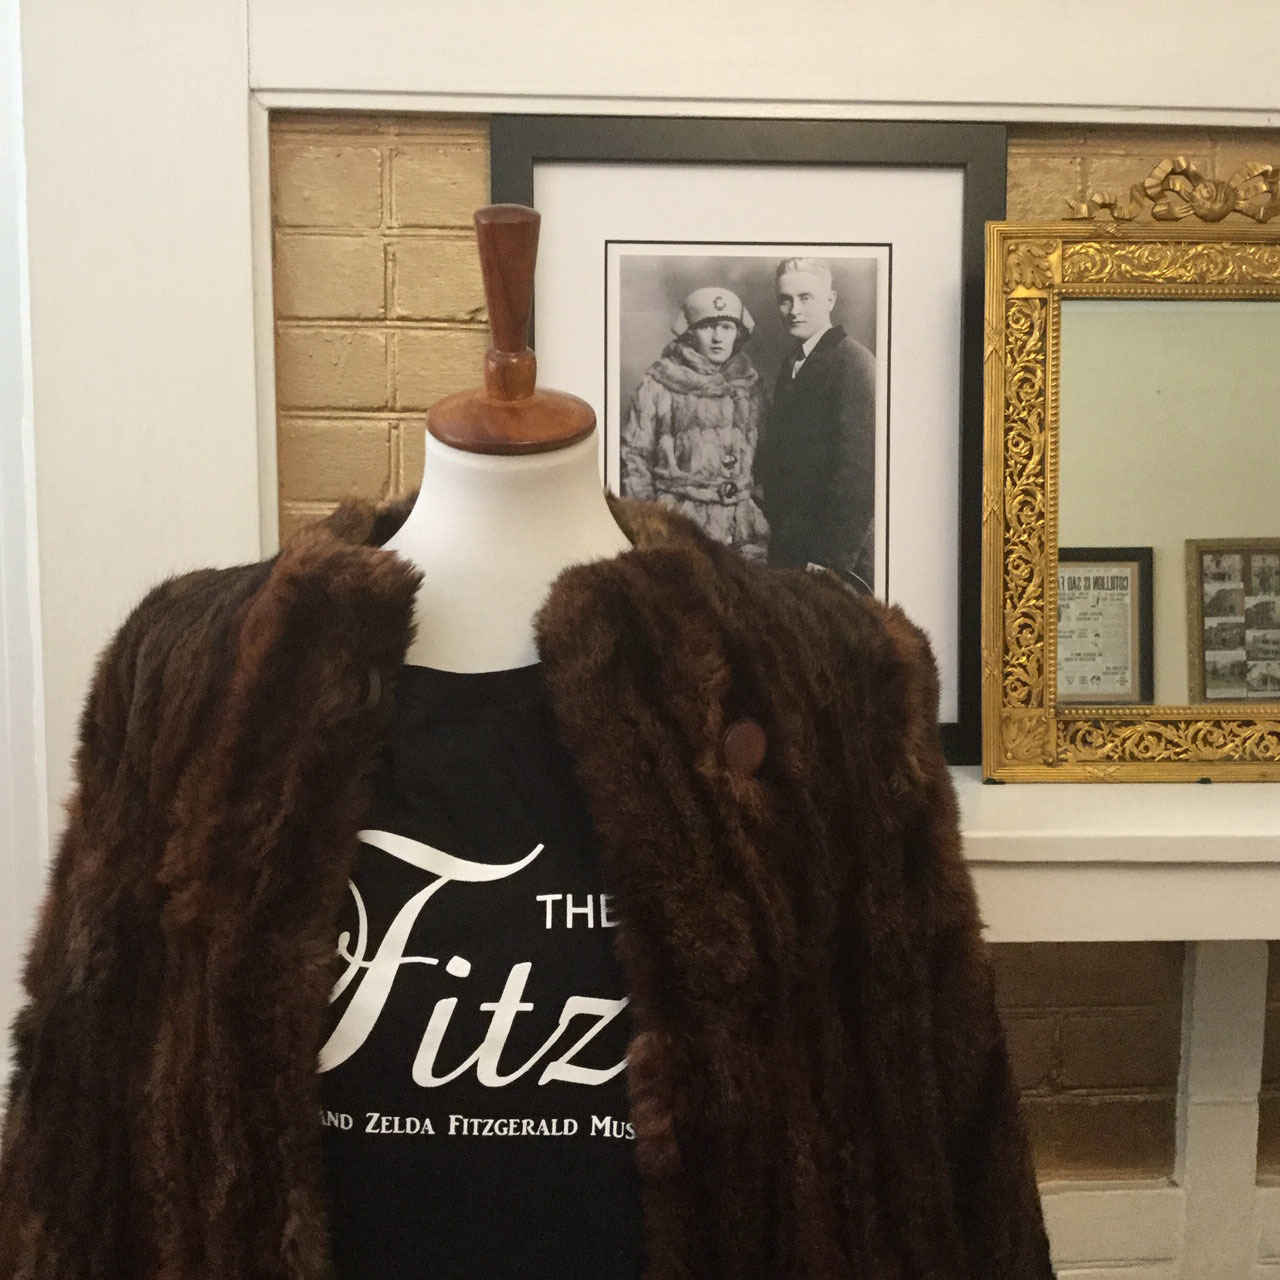 The Fitzgerald Museum image